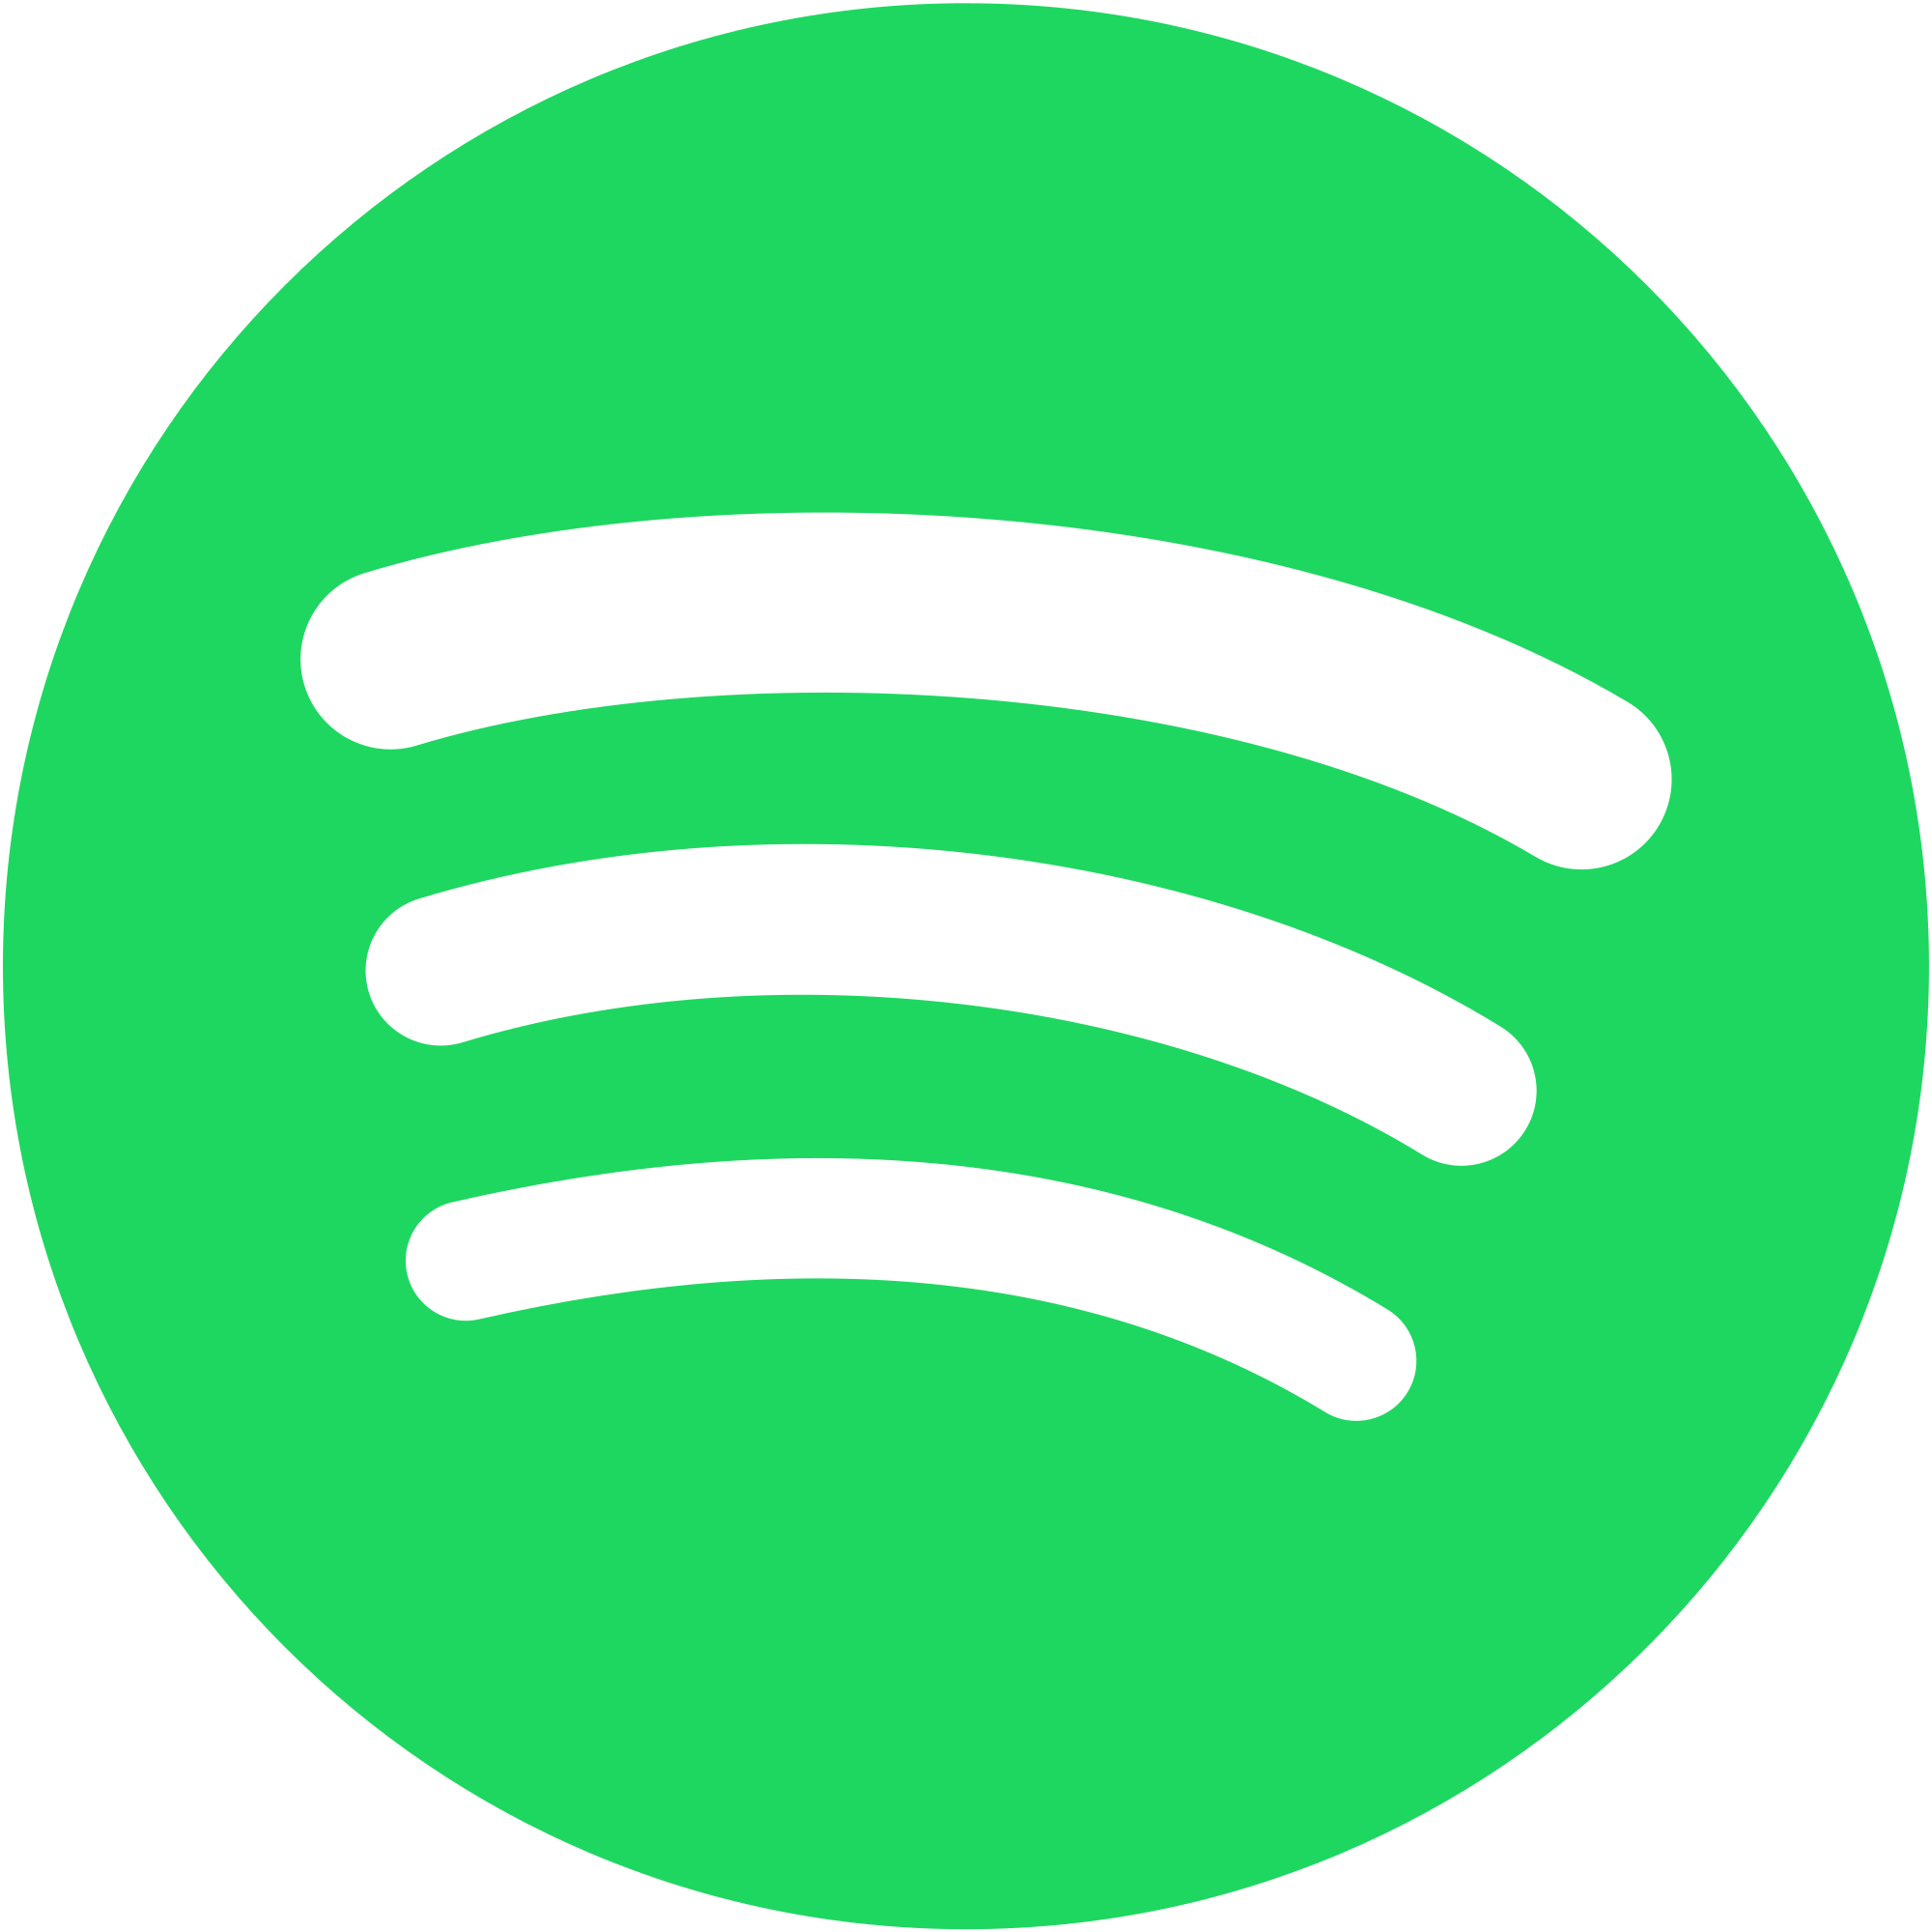 Listen to Spark Music NZ on Spotify